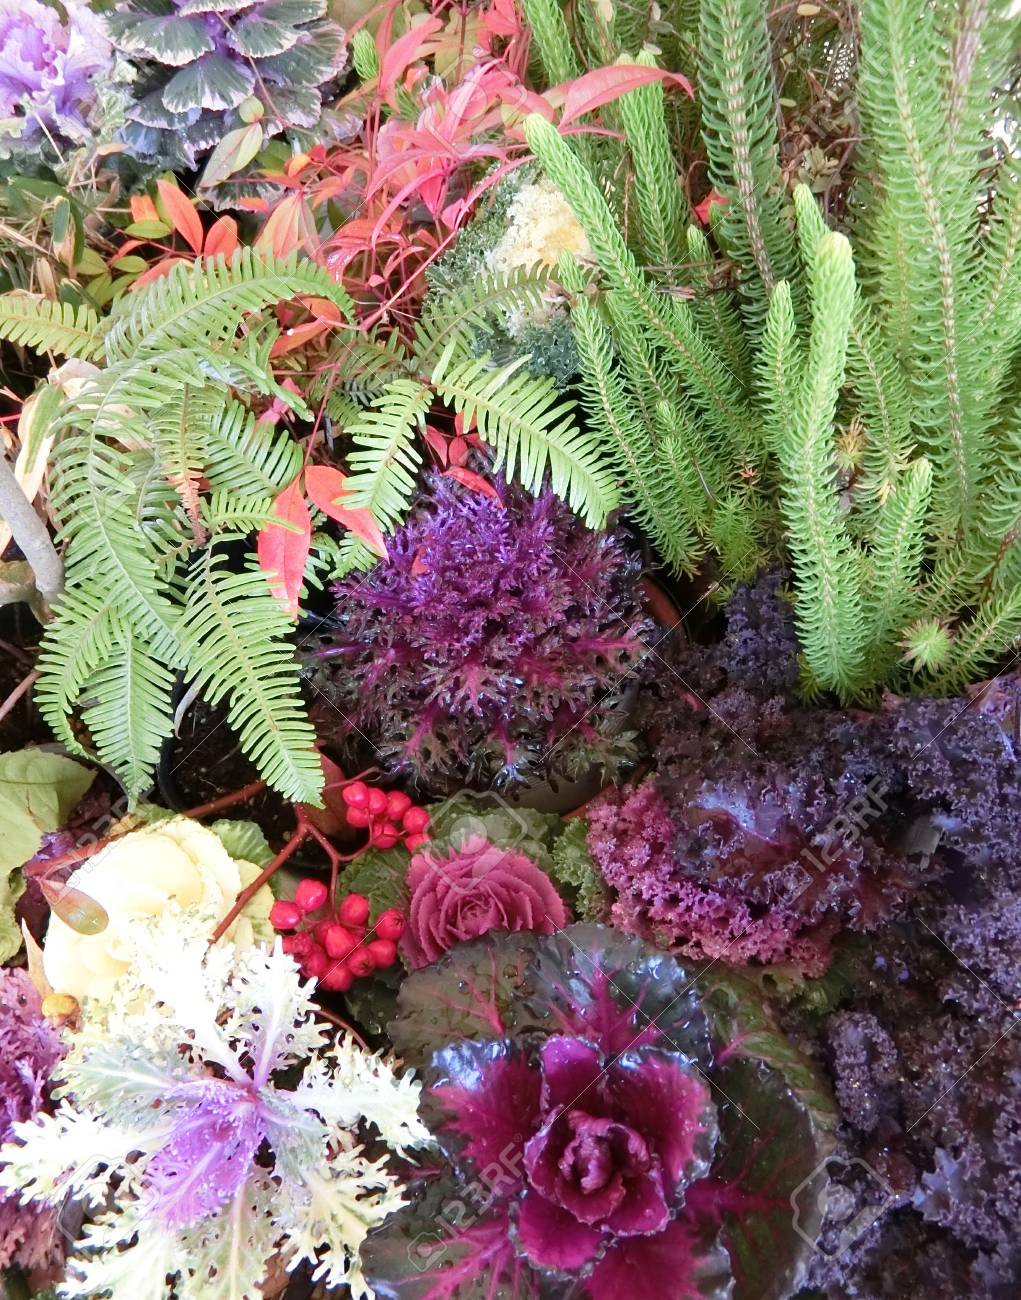 New Years Foliage >> Cloloful Foliage Plants Planted For New Year Stock Photo Picture